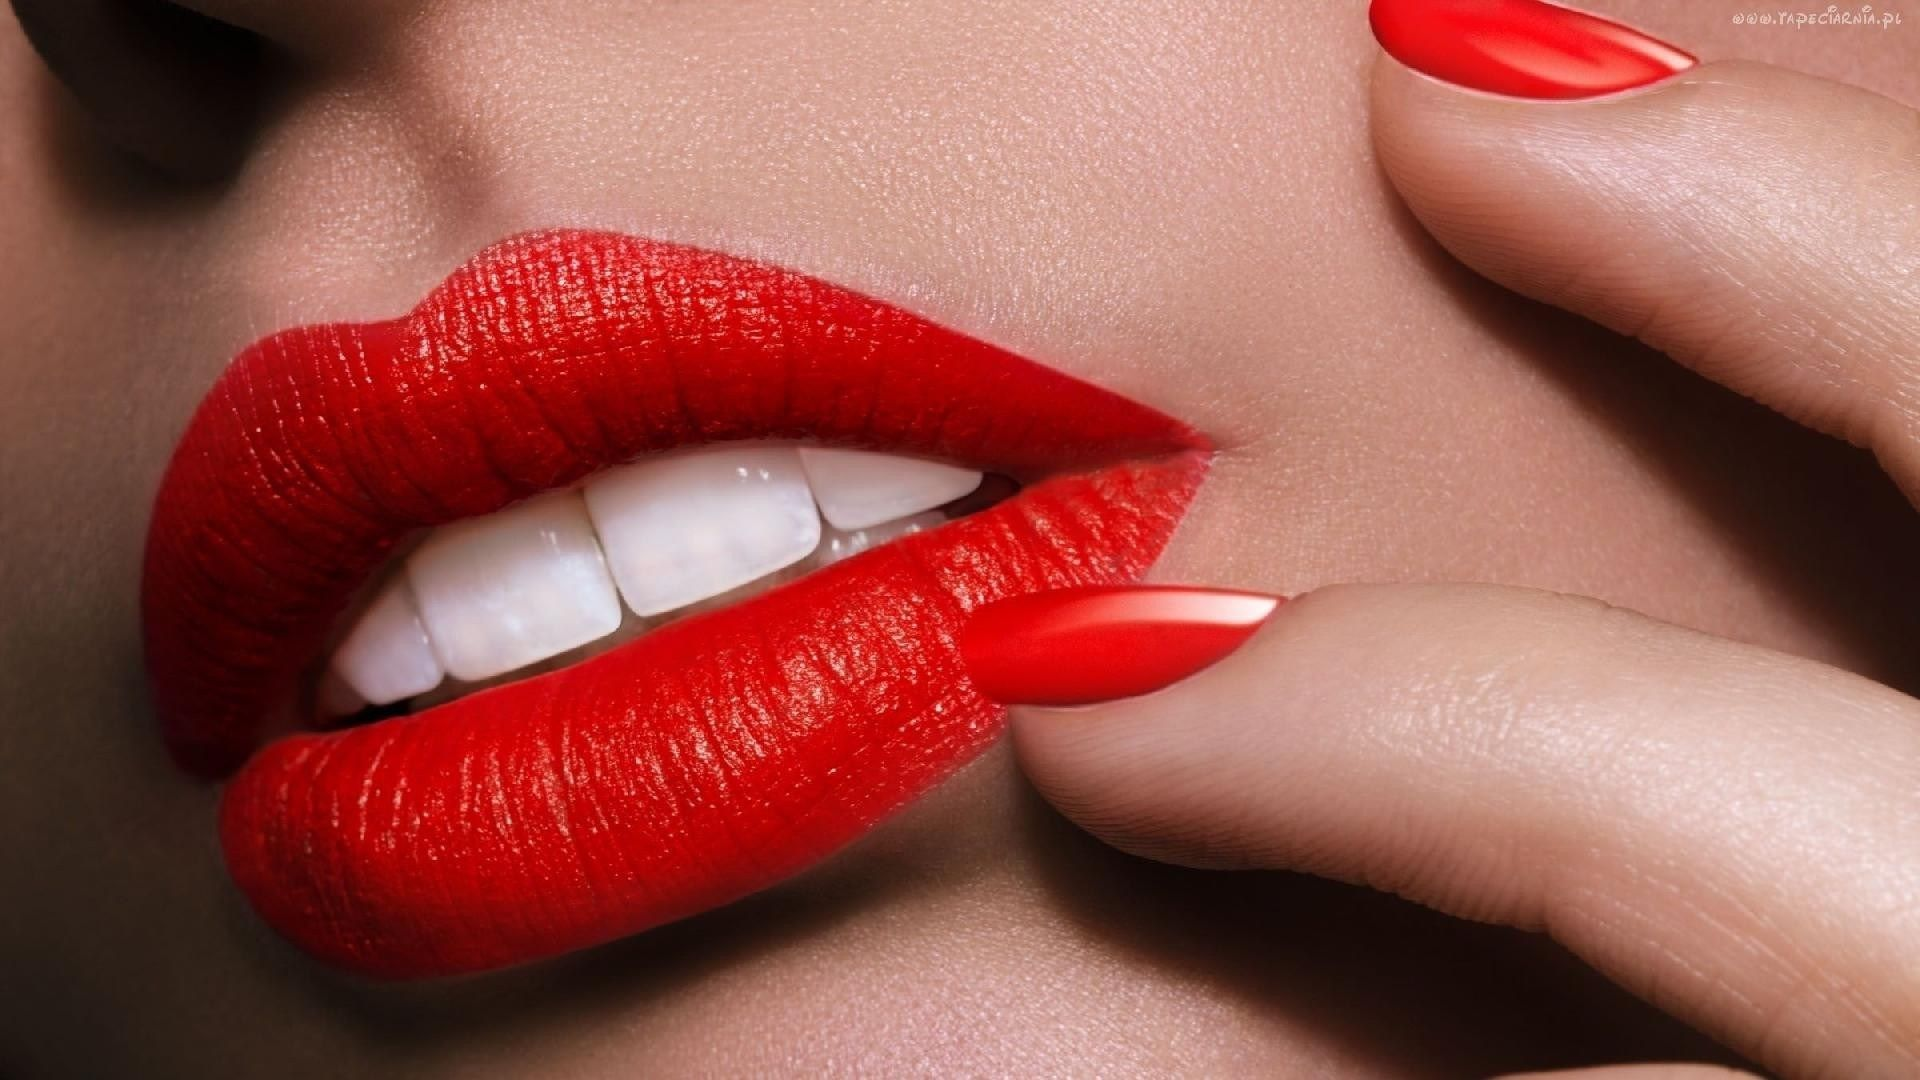 women-lips-mouth-nail-polish-red-lipstick-white-teeth-hd-wallpapers